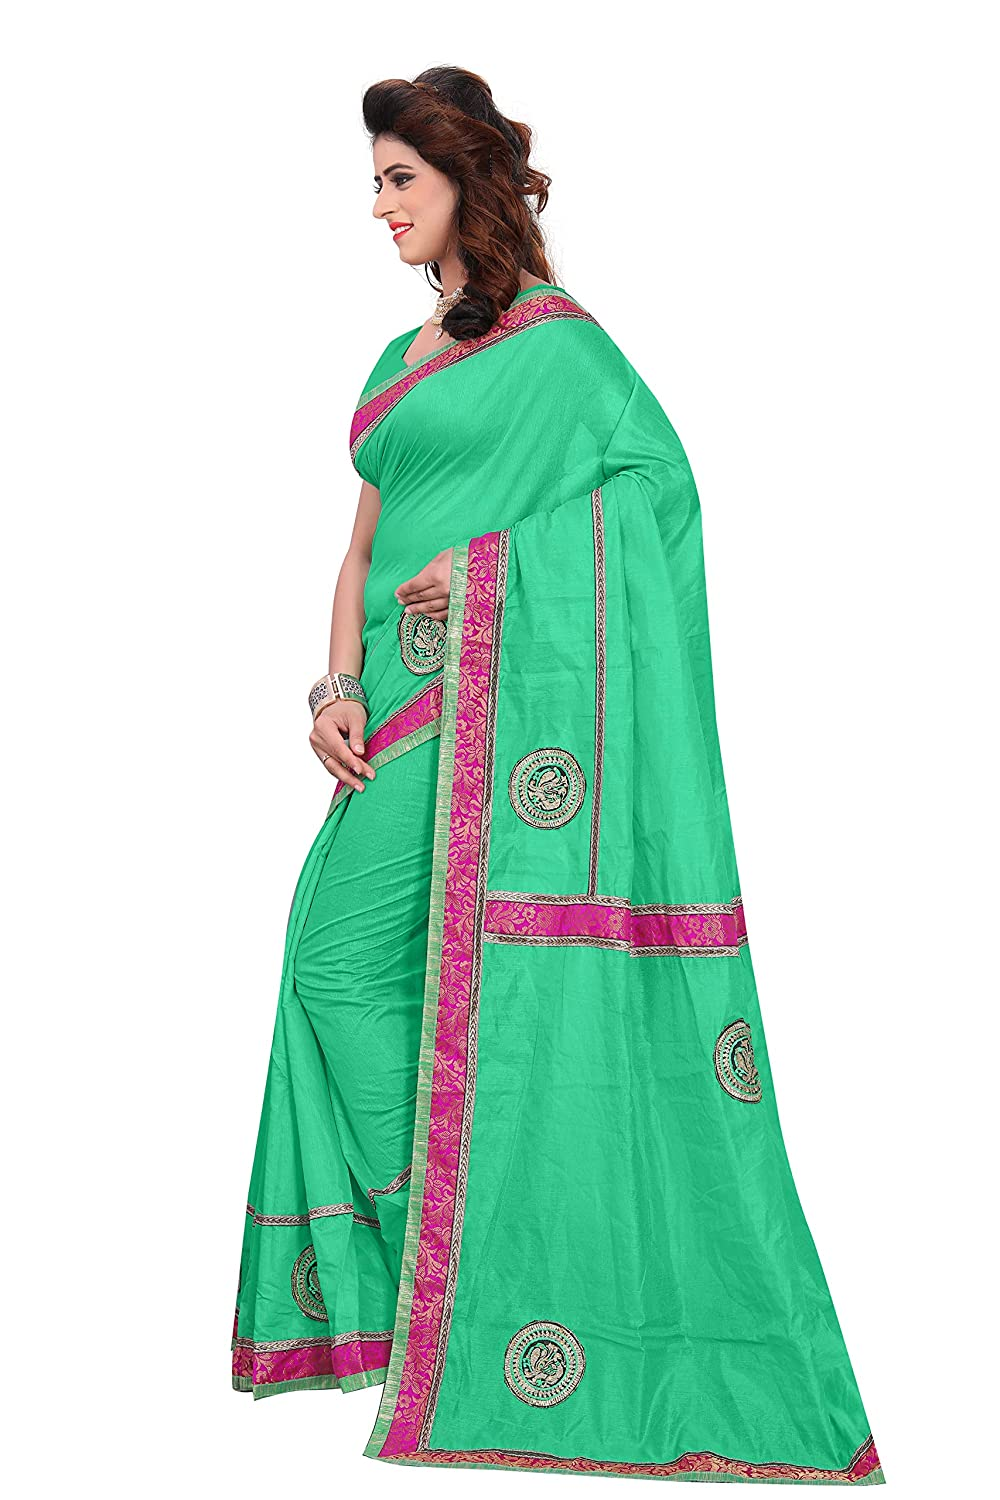 8a1d6366ed227a kirz web store women's cotton silk saree With Blouse Piece(light green  2320_bhagal): Amazon.in: Clothing & Accessories